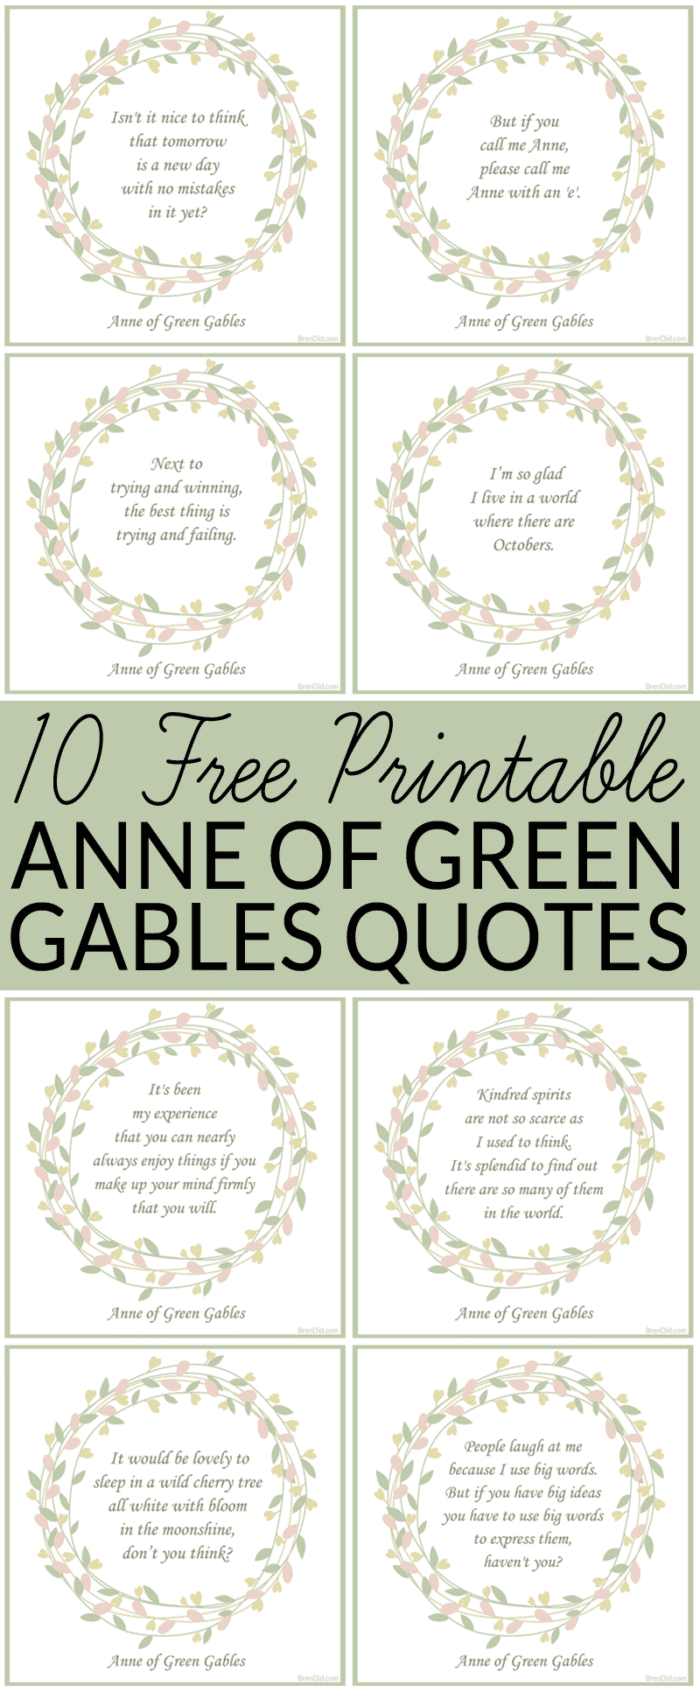 Free Printable Anne of Green Gables Quotes - Anne of Green Gables - 10 free quotes - I'm so glad I live in a world where there are Octobers.